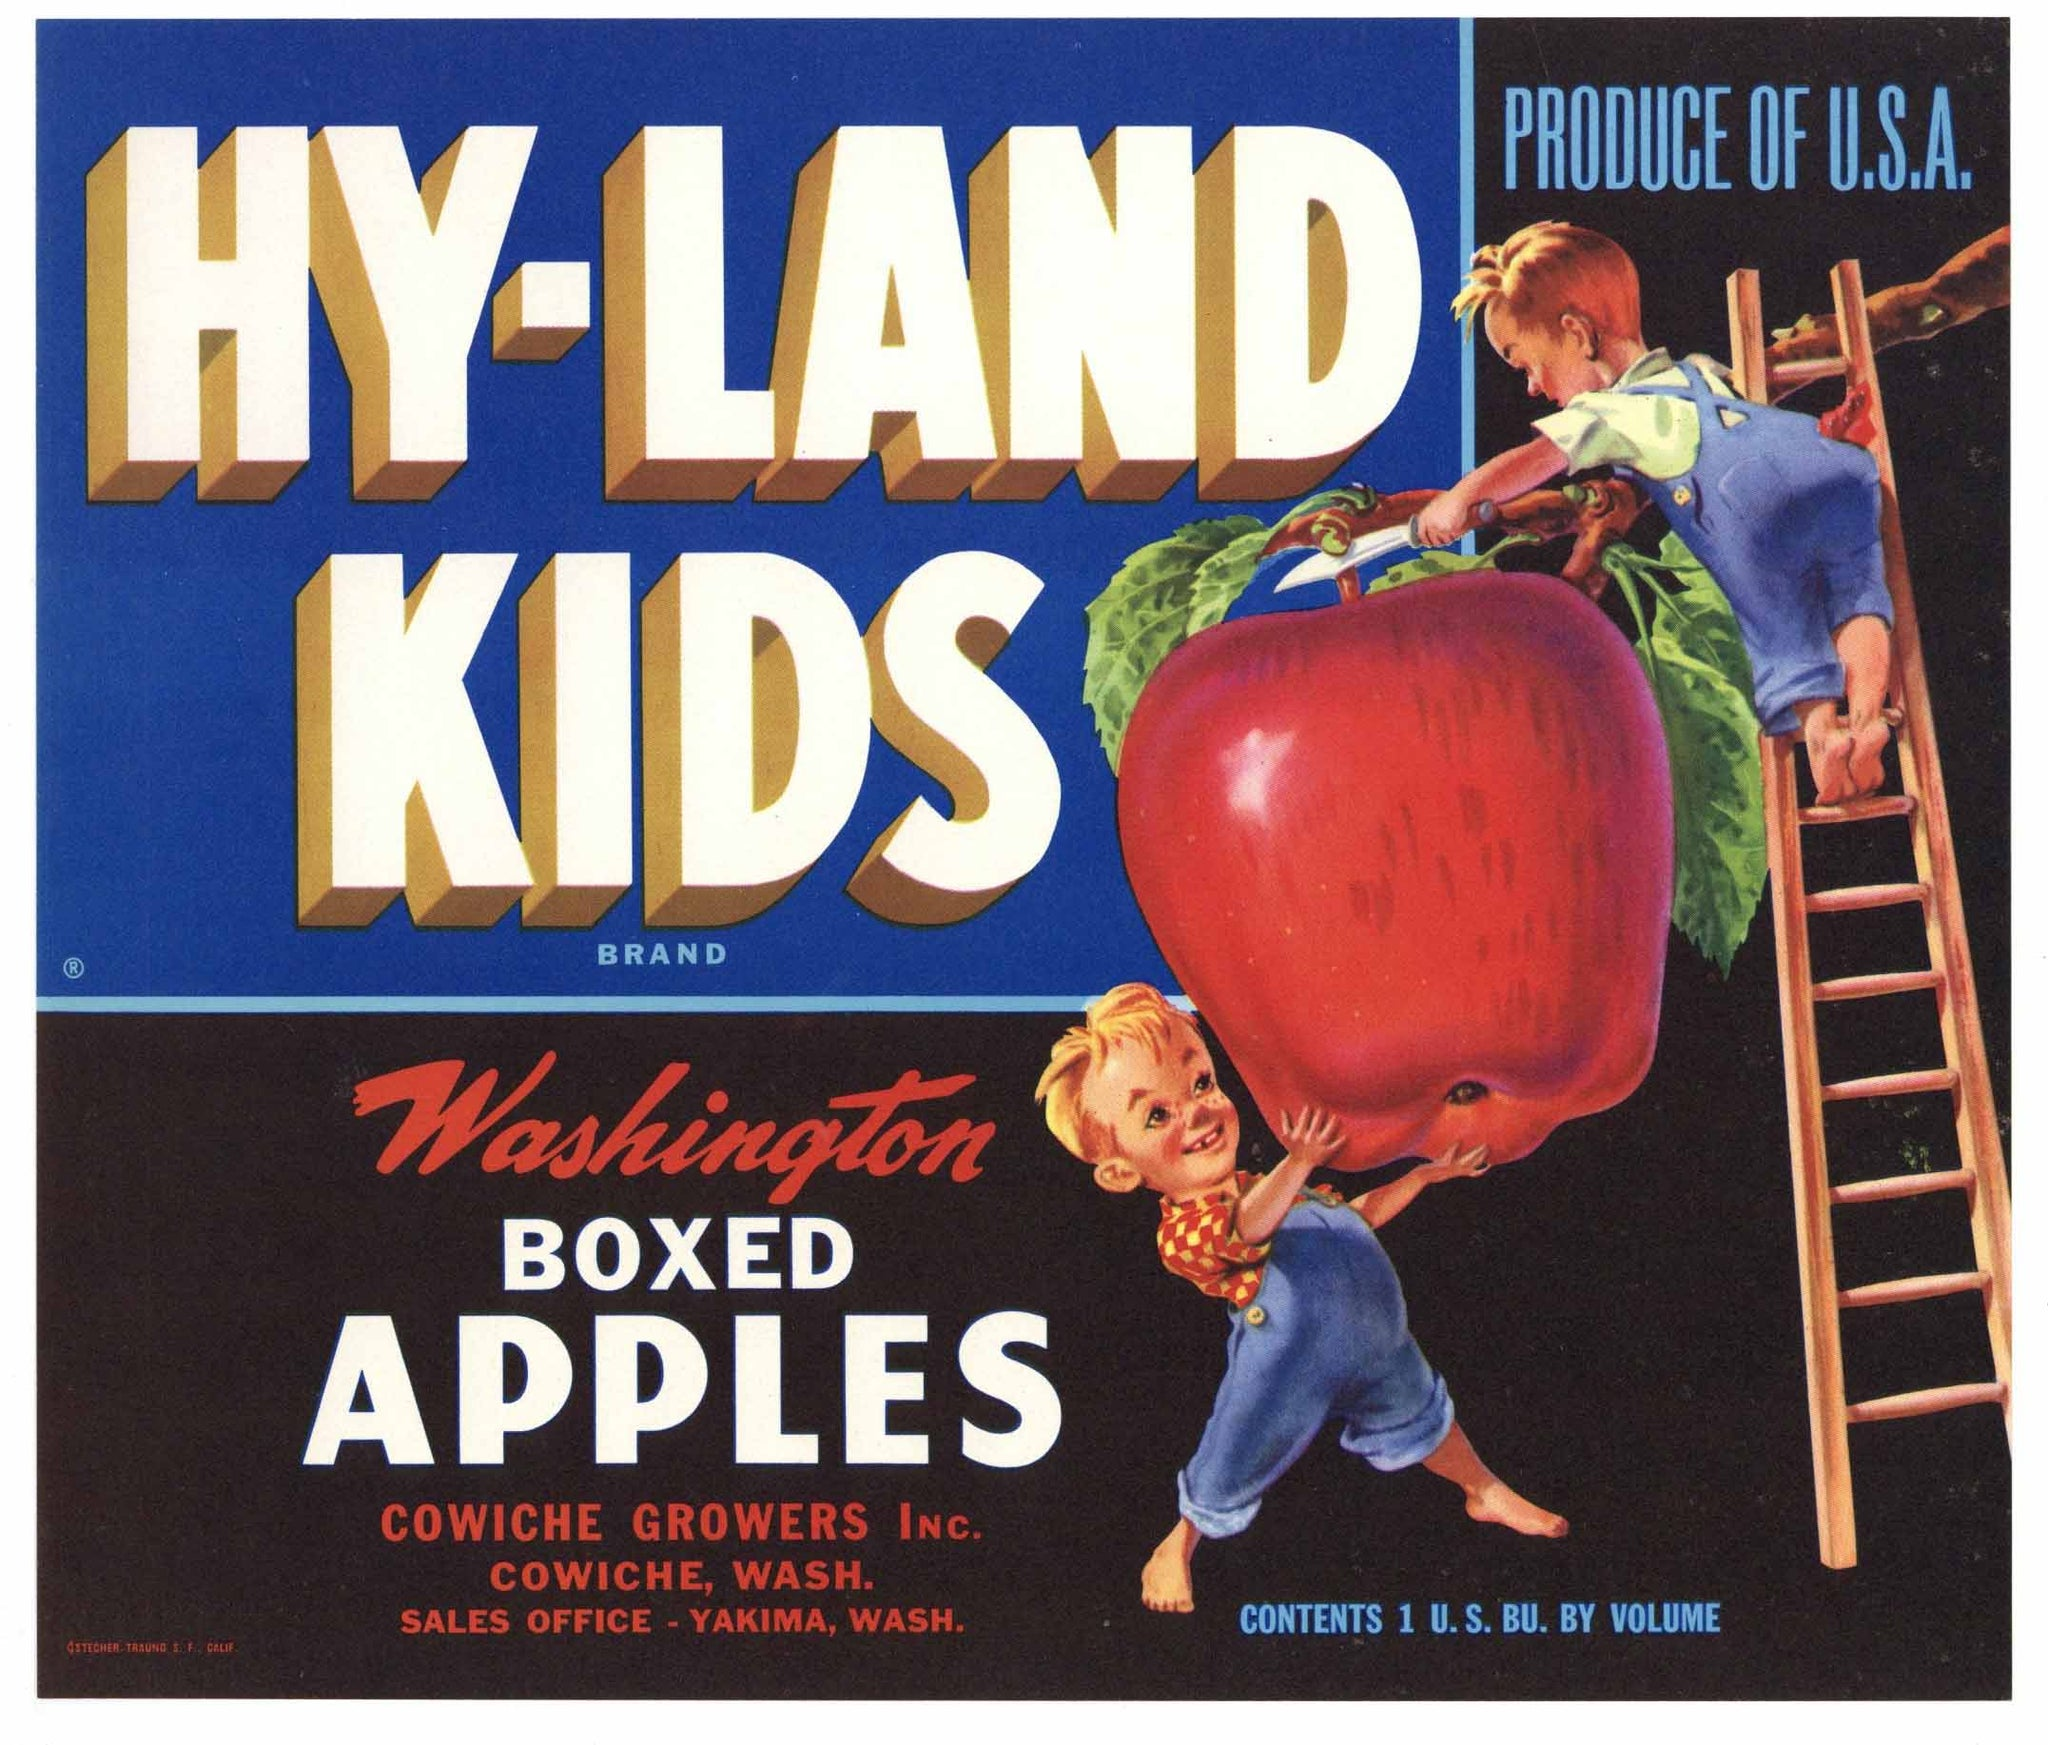 Hy Land Kids Brand Vintage Cowiche Washington Apple Crate Label, blue